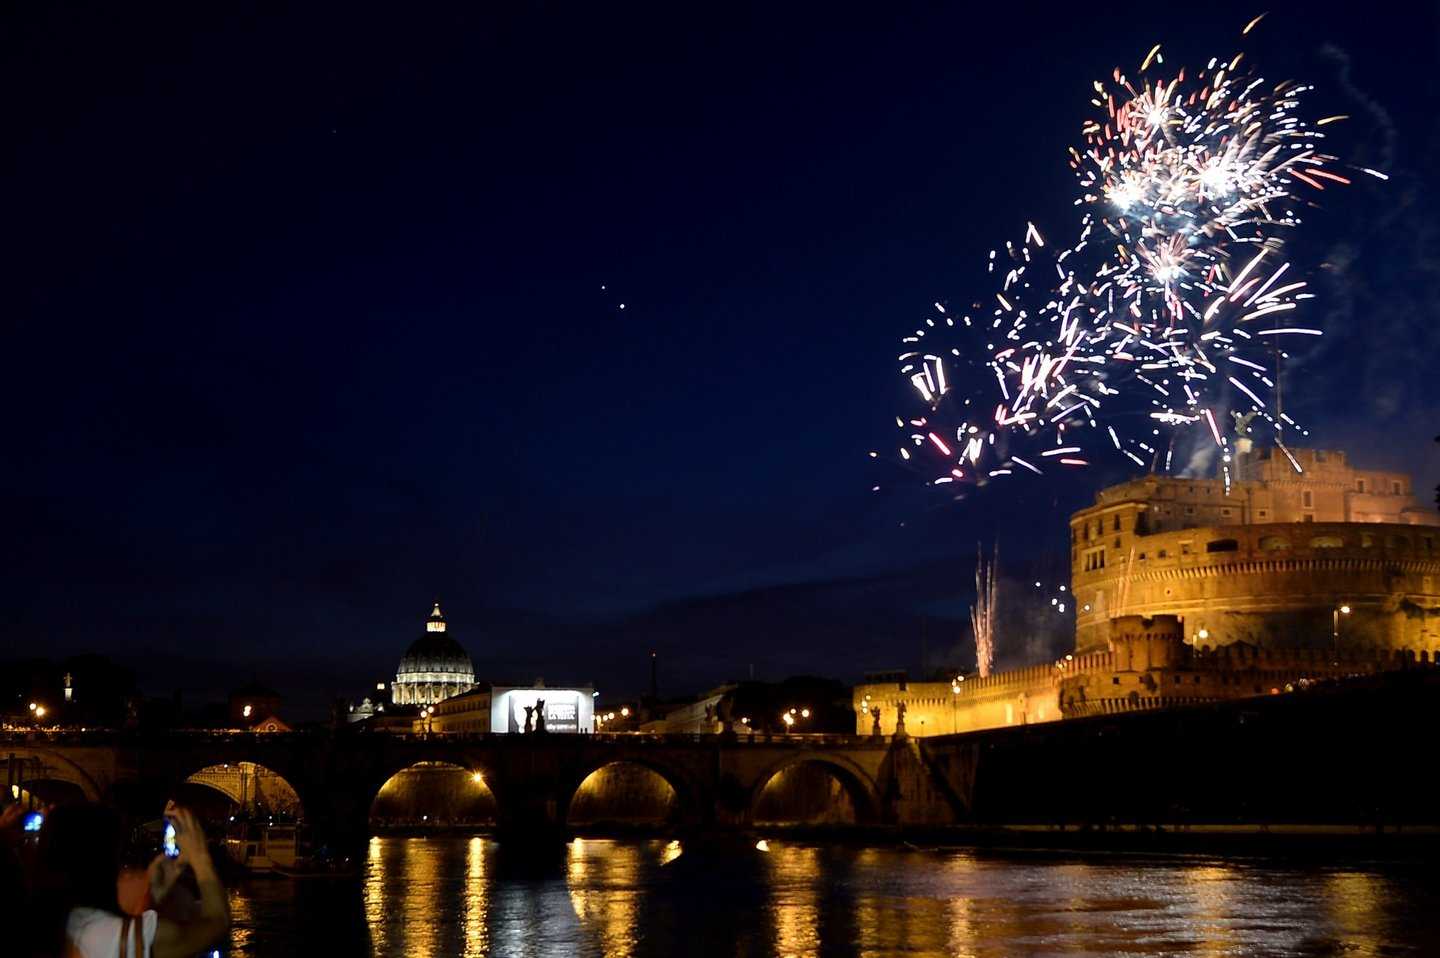 Fireworks burst in the sky over the Castel Sant'Angelo during the traditional 'Girandola', the feast of Romes patron St Peter and Paul, on June 29, 2015 in Rome. AFP PHOTO / TIZIANA FABI (Photo credit should read TIZIANA FABI/AFP/Getty Images)